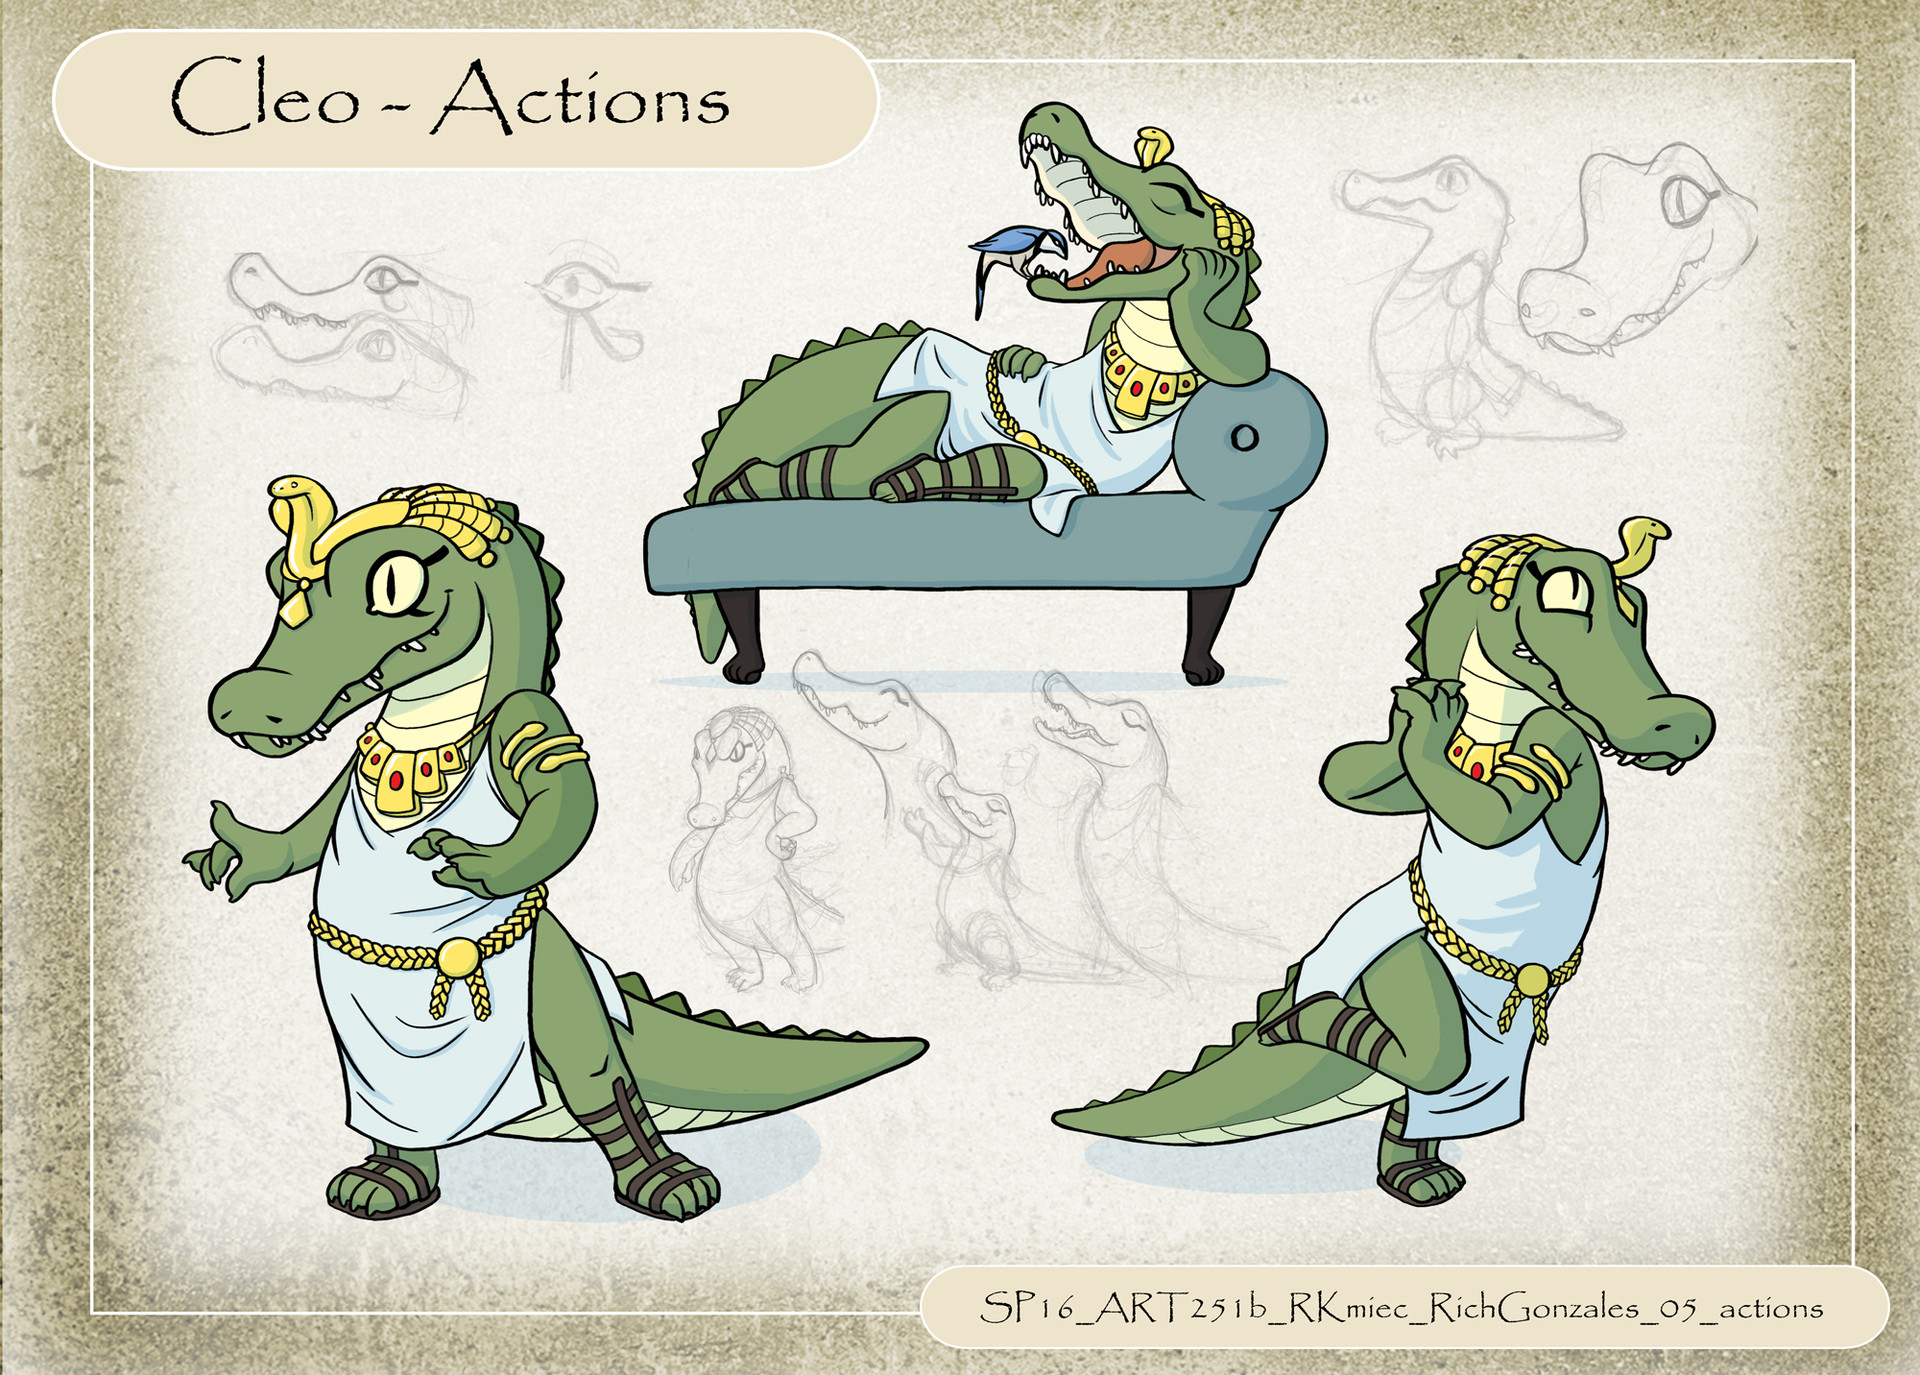 Cleo - character design